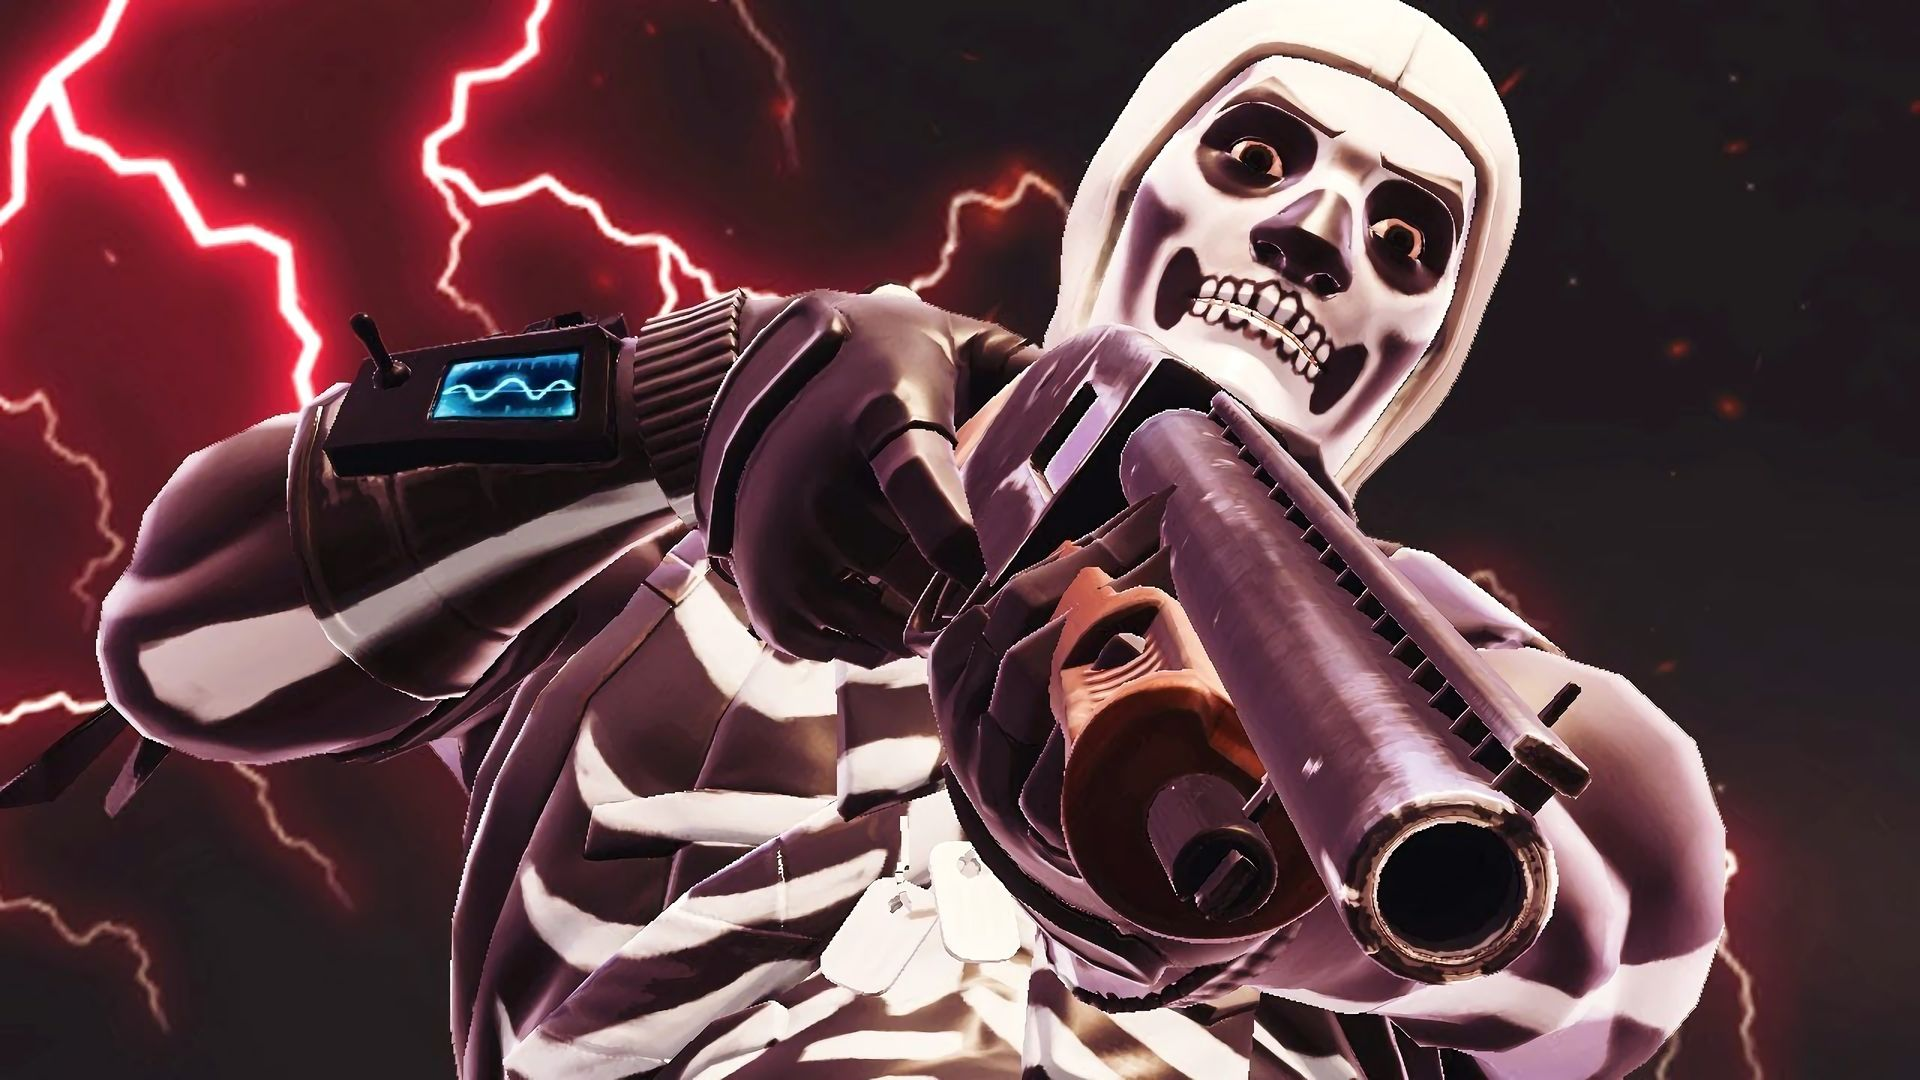 1920x1080 Hd Wallpaper Of Fortnite Battle Royale Video Game Skull